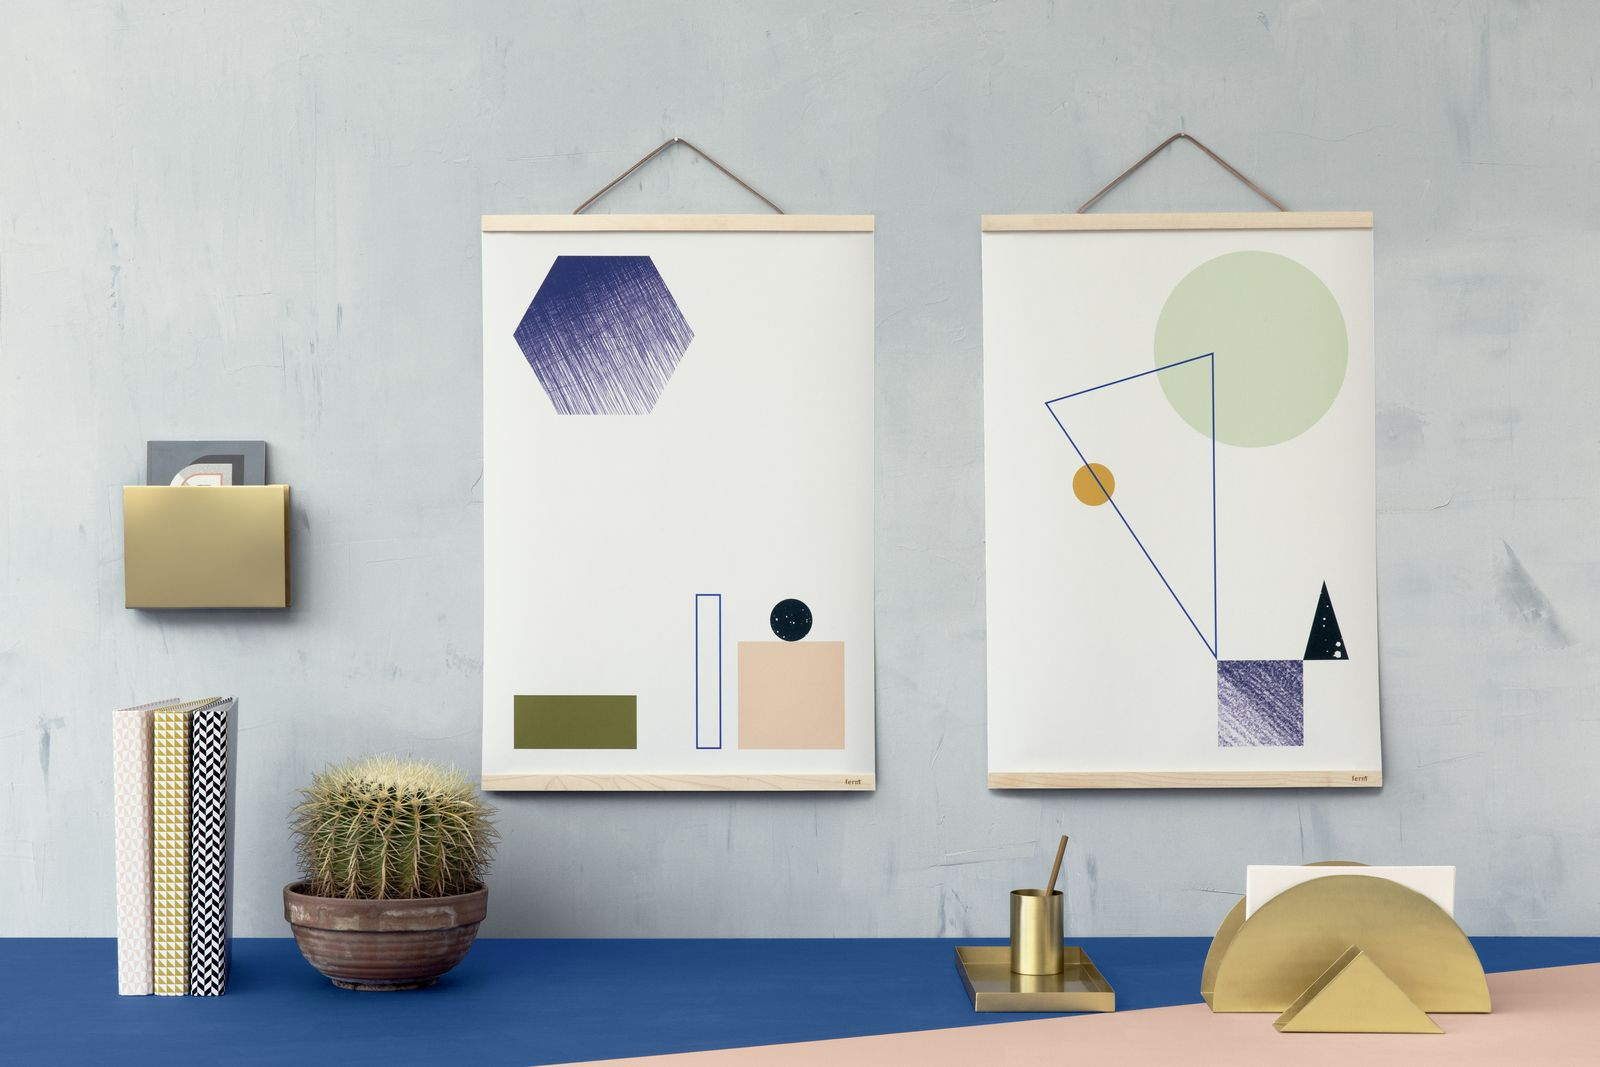 Six fuss-free ways to display art (trip to framing store not required).